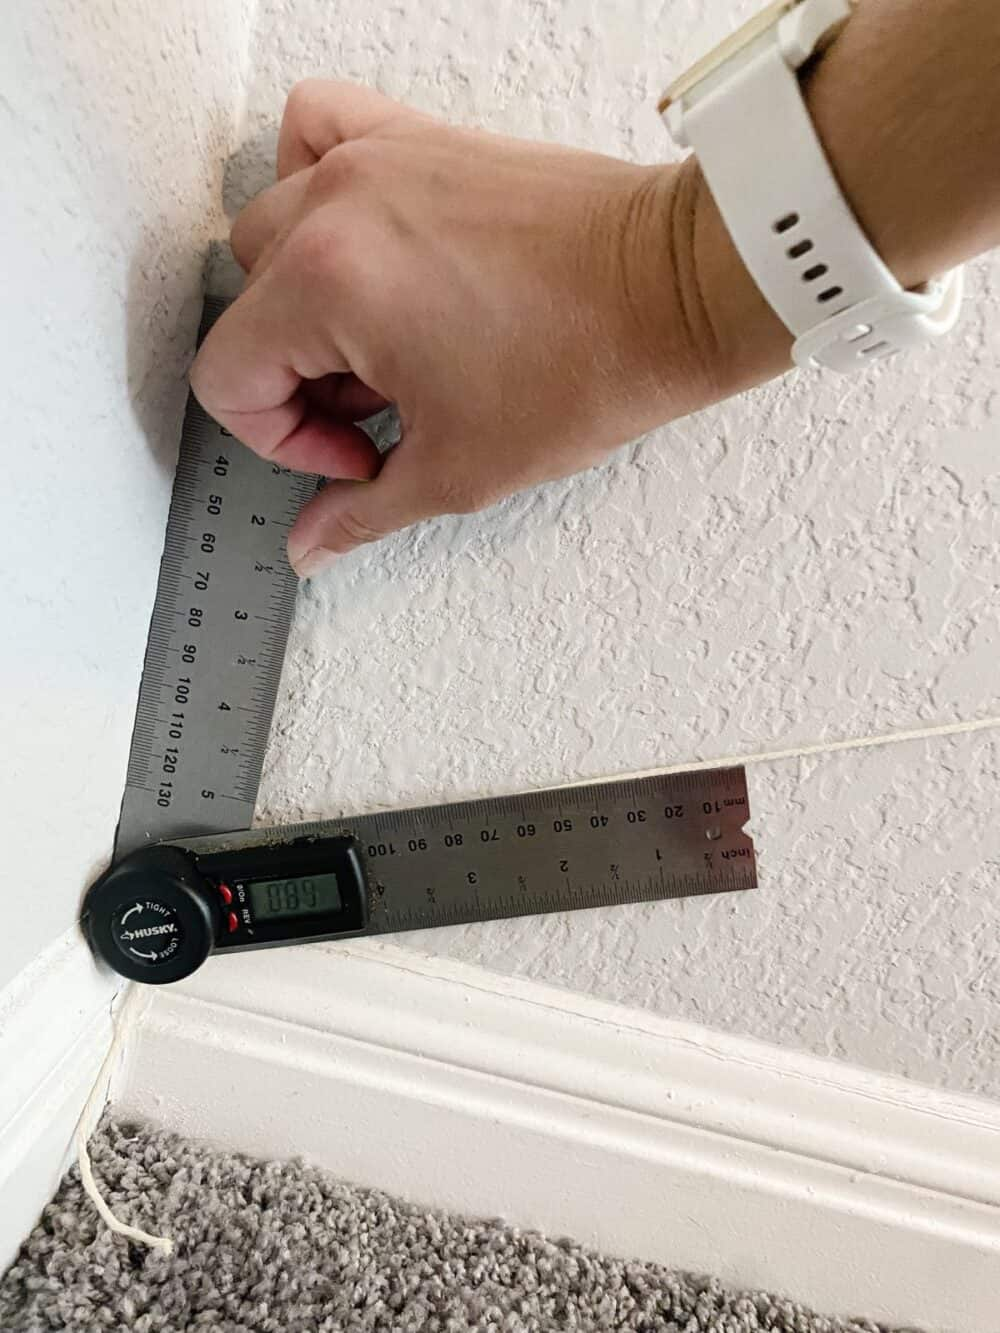 Hang using angle finder to find the angle to place trim